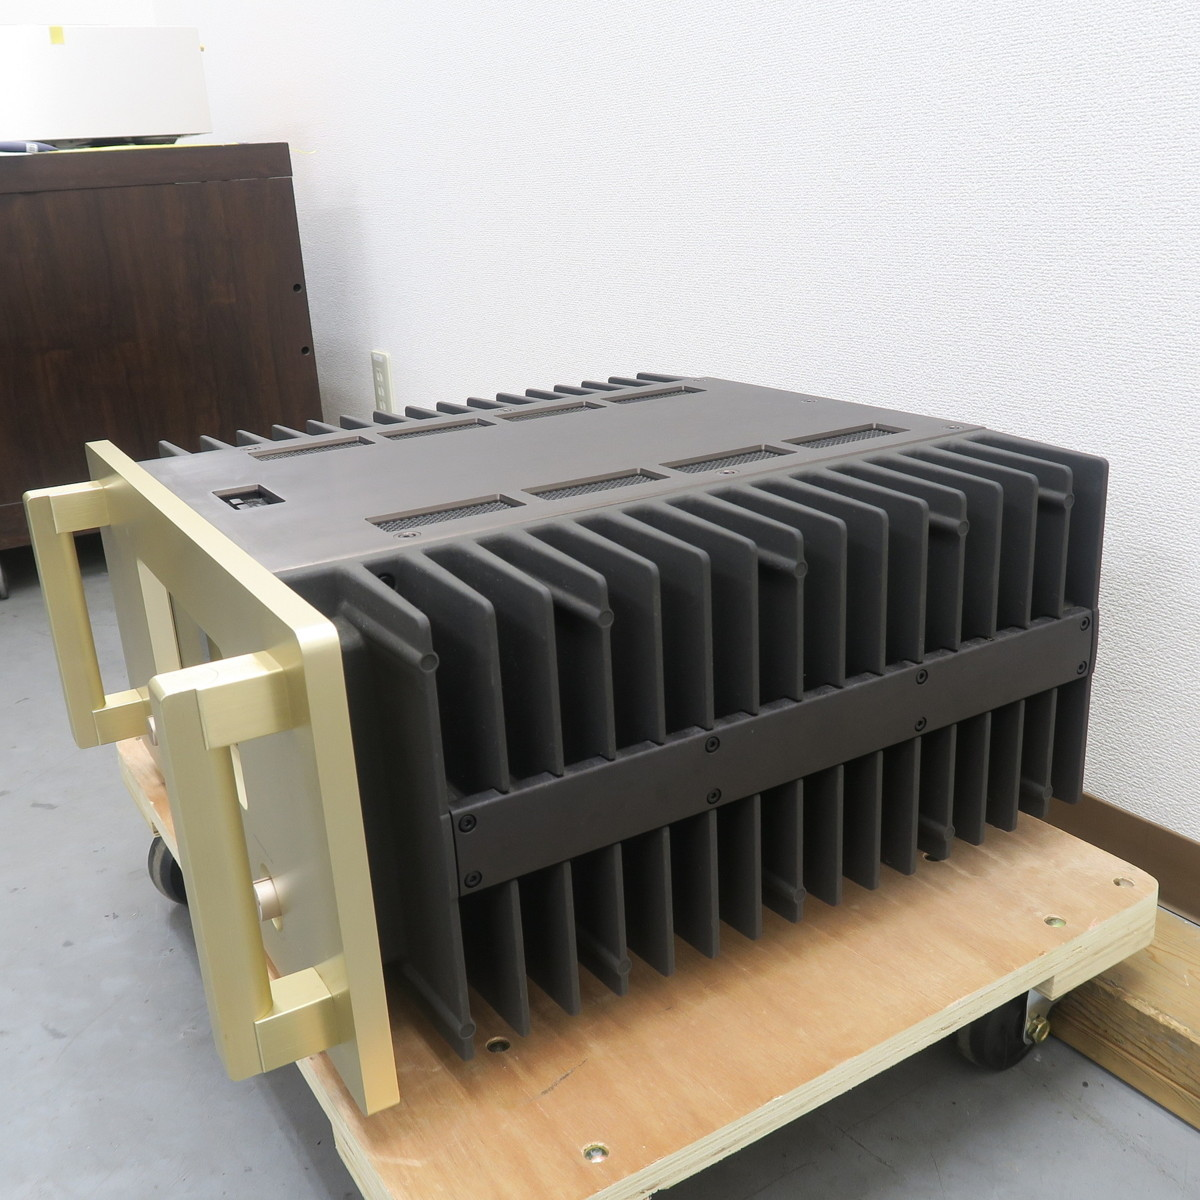 【Bランク】アキュフェーズ Accuphase A-50 パワーアンプ @49991_画像3